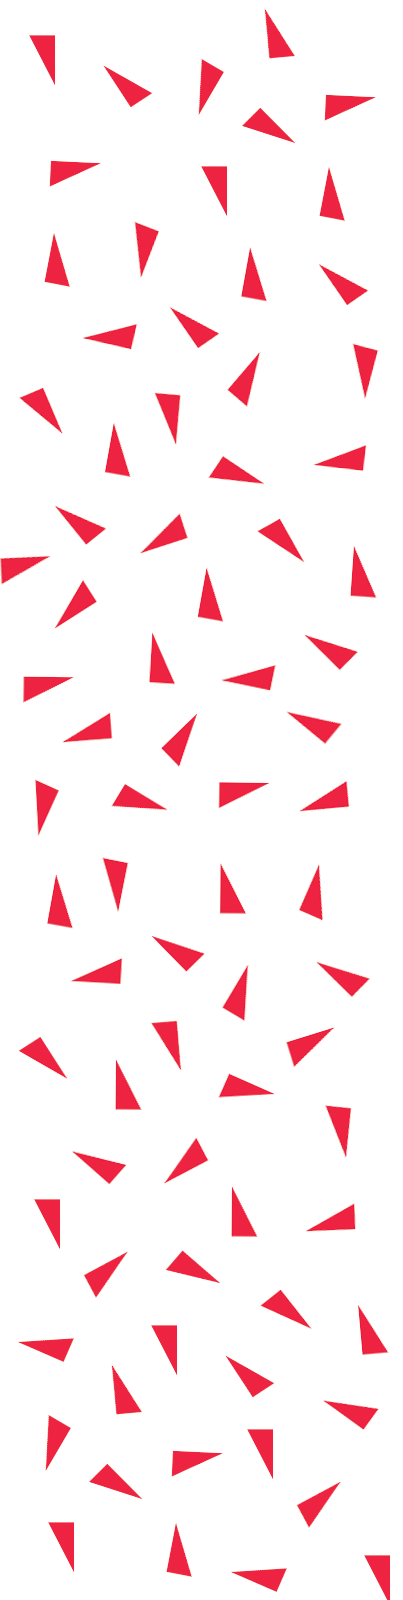 pattern 1  copy.png